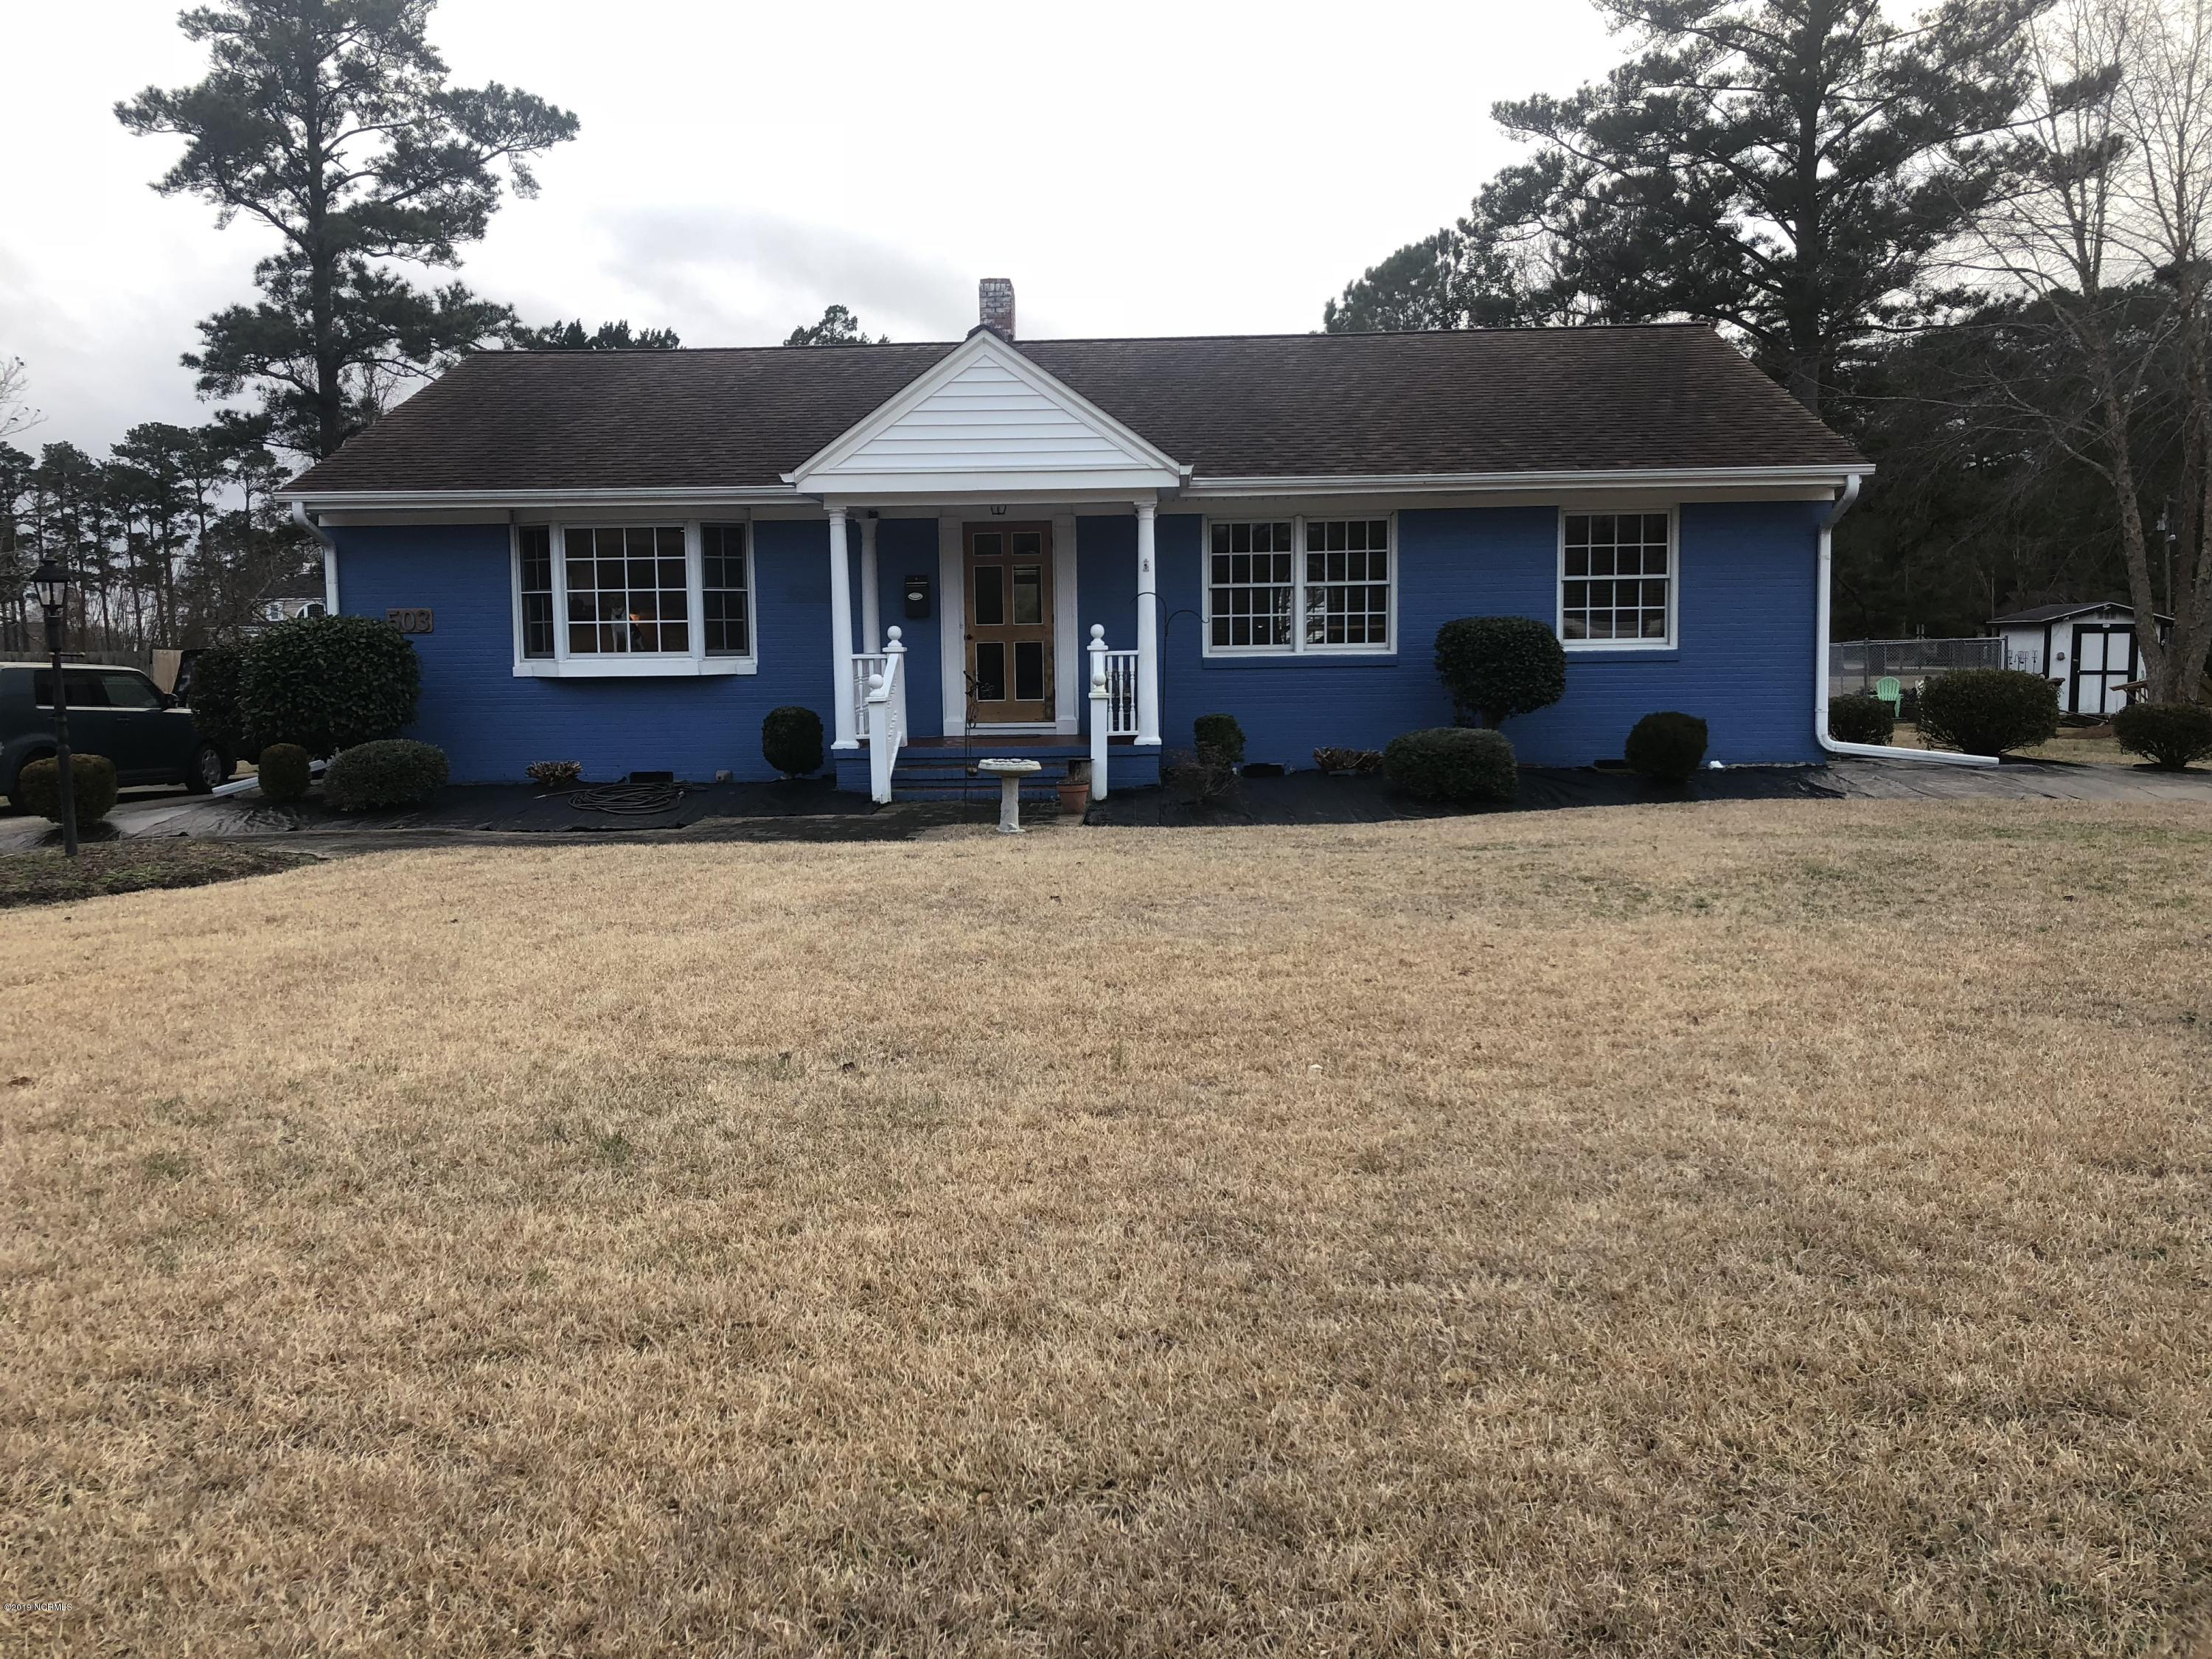 503 Fairview Avenue, Washington, North Carolina, 3 Bedrooms Bedrooms, 9 Rooms Rooms,1 BathroomBathrooms,Single family residence,For sale,Fairview,100150138